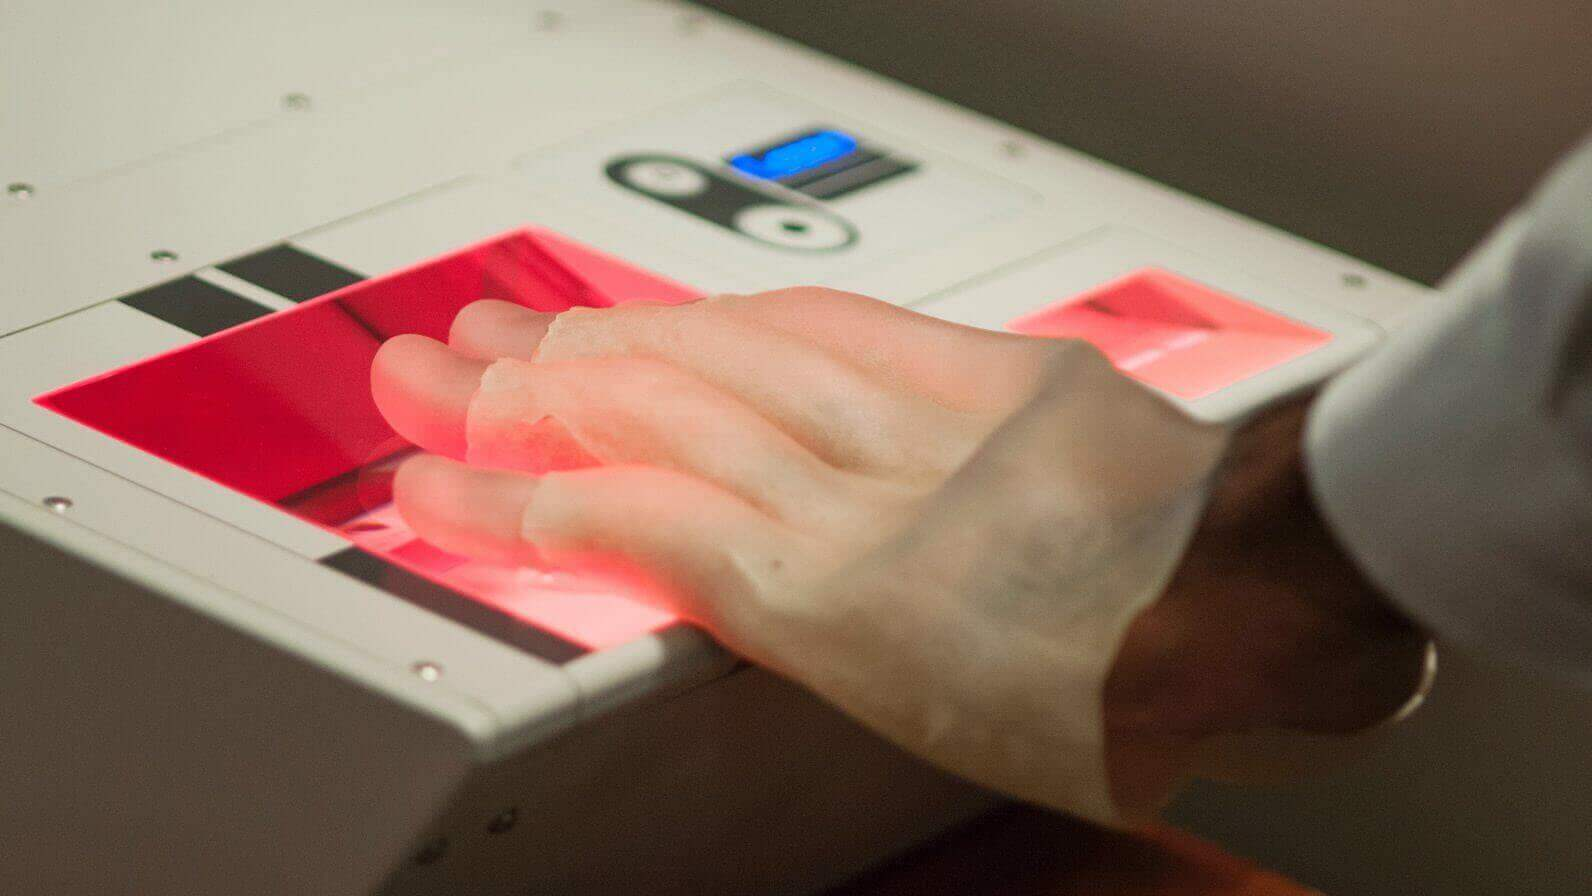 3D Printed Hands Help Identify New Security Threat | All3DP